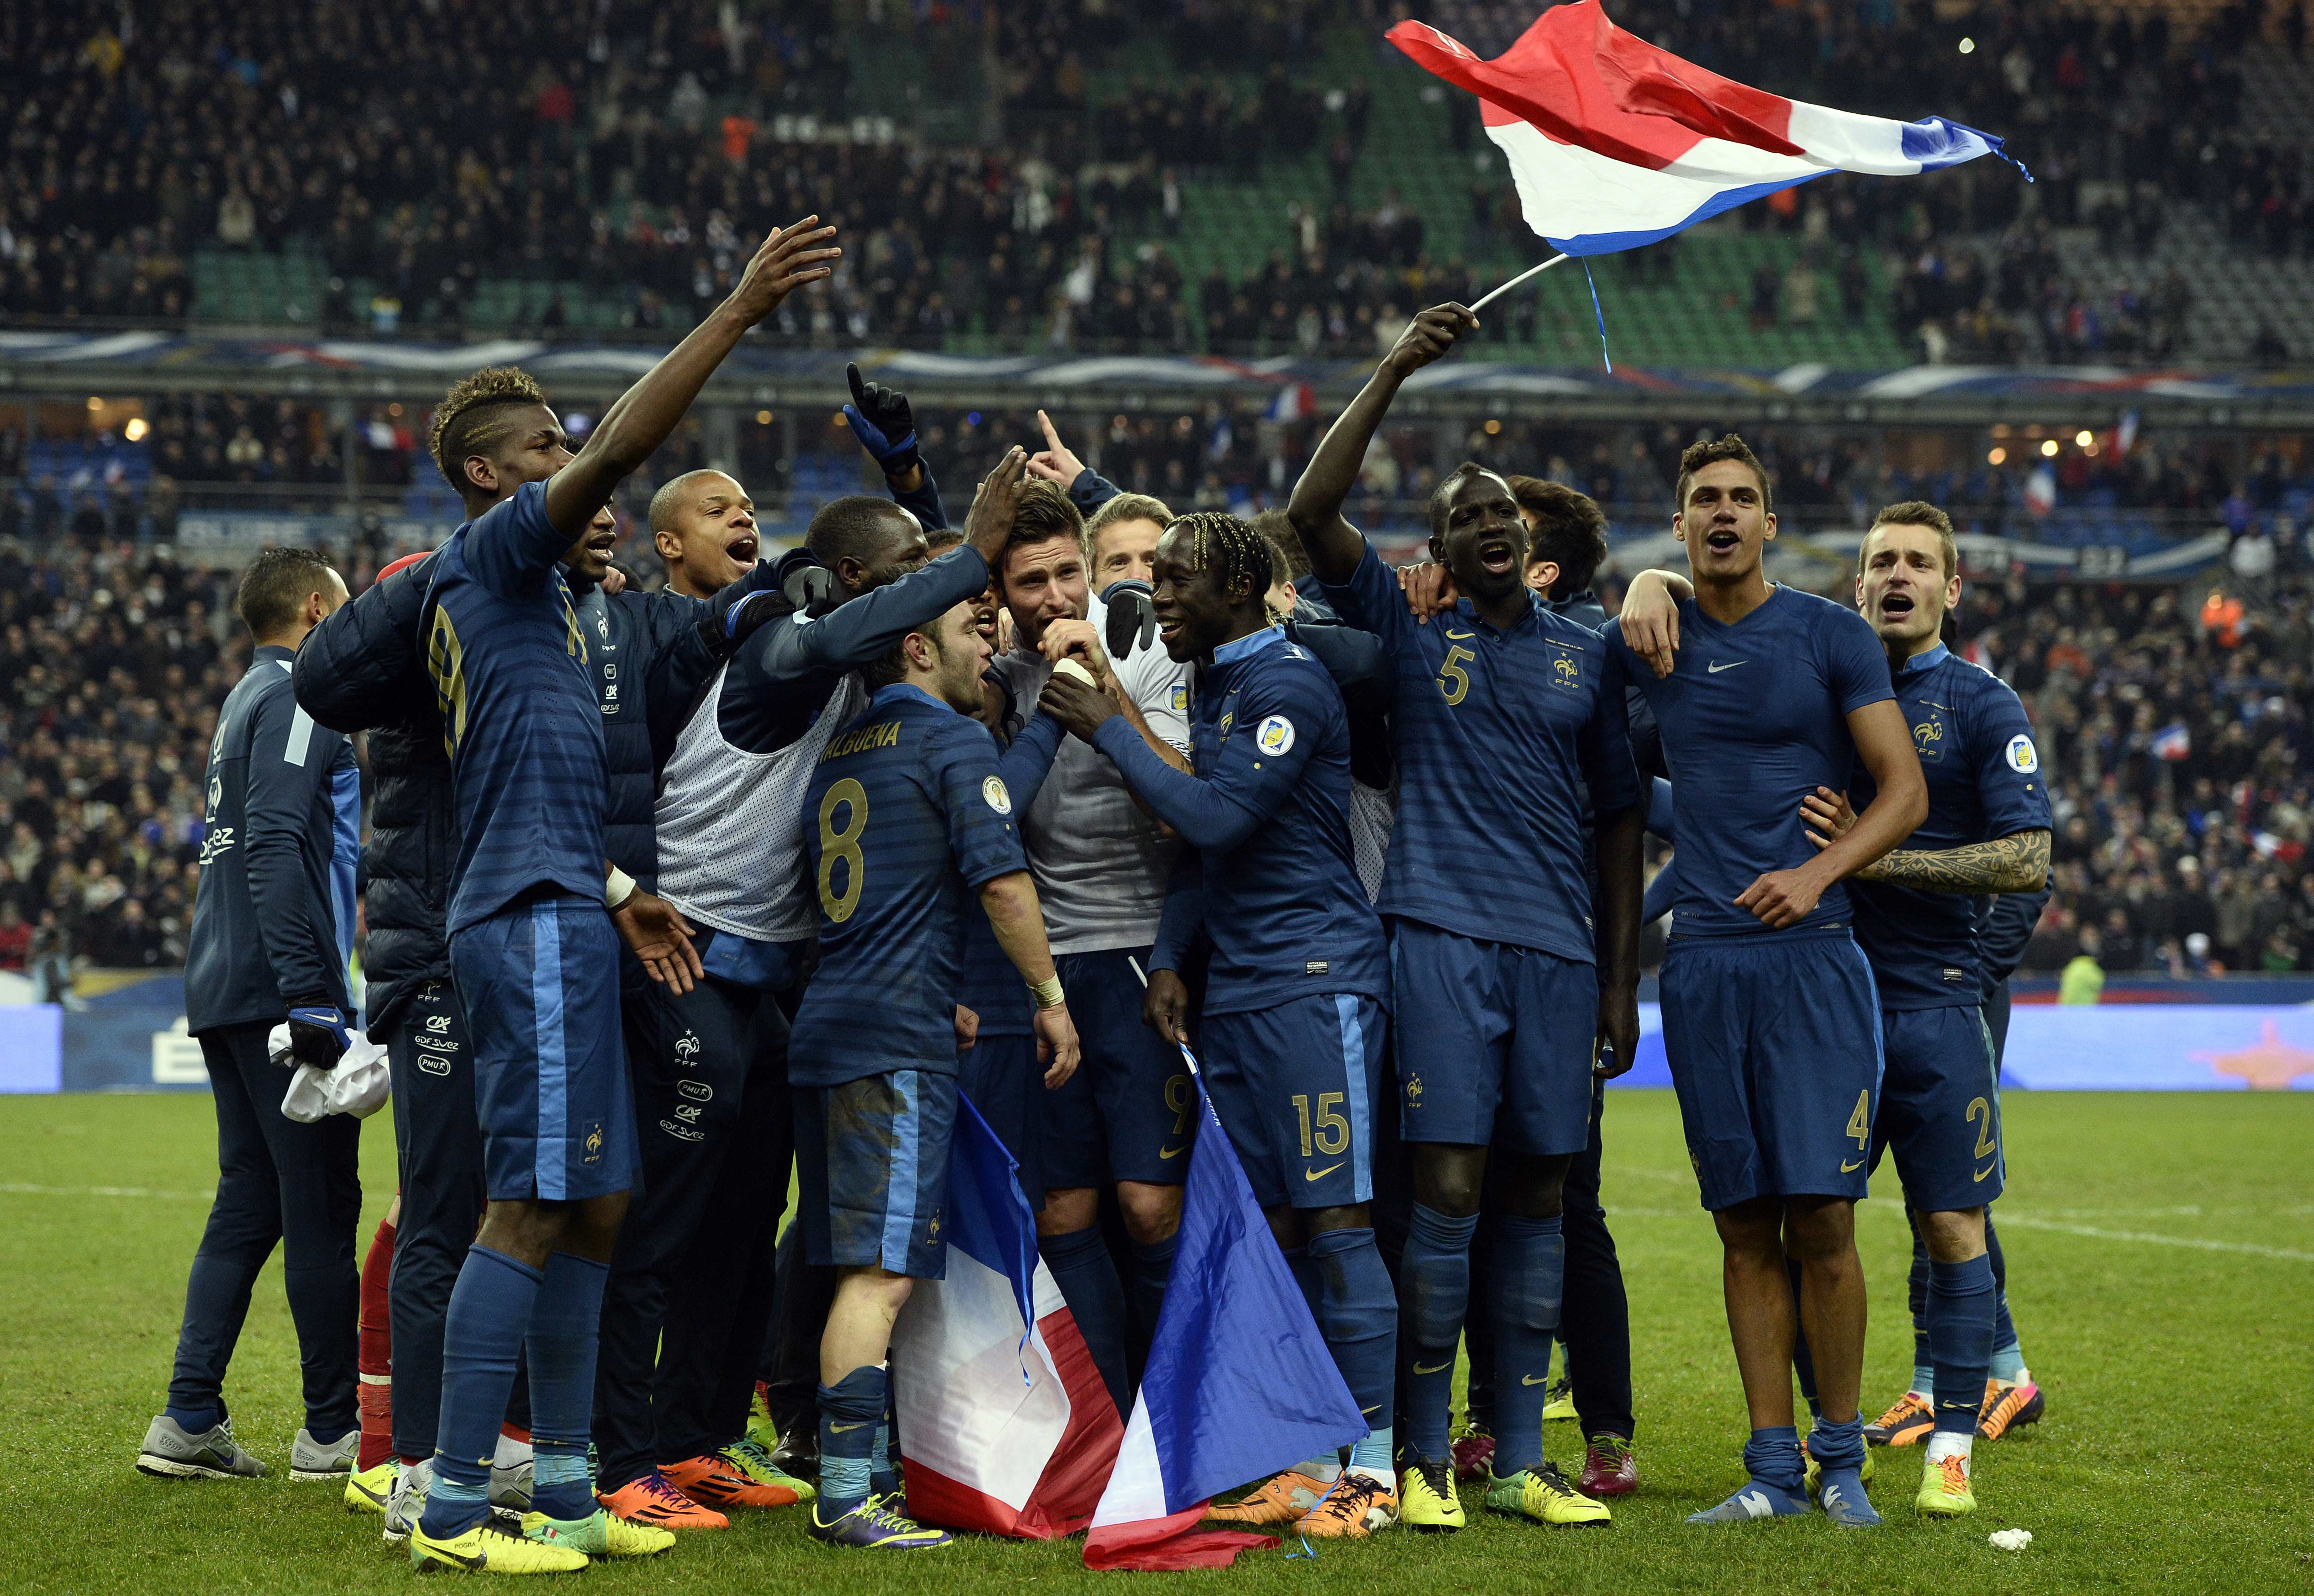 France 2014 World Cup